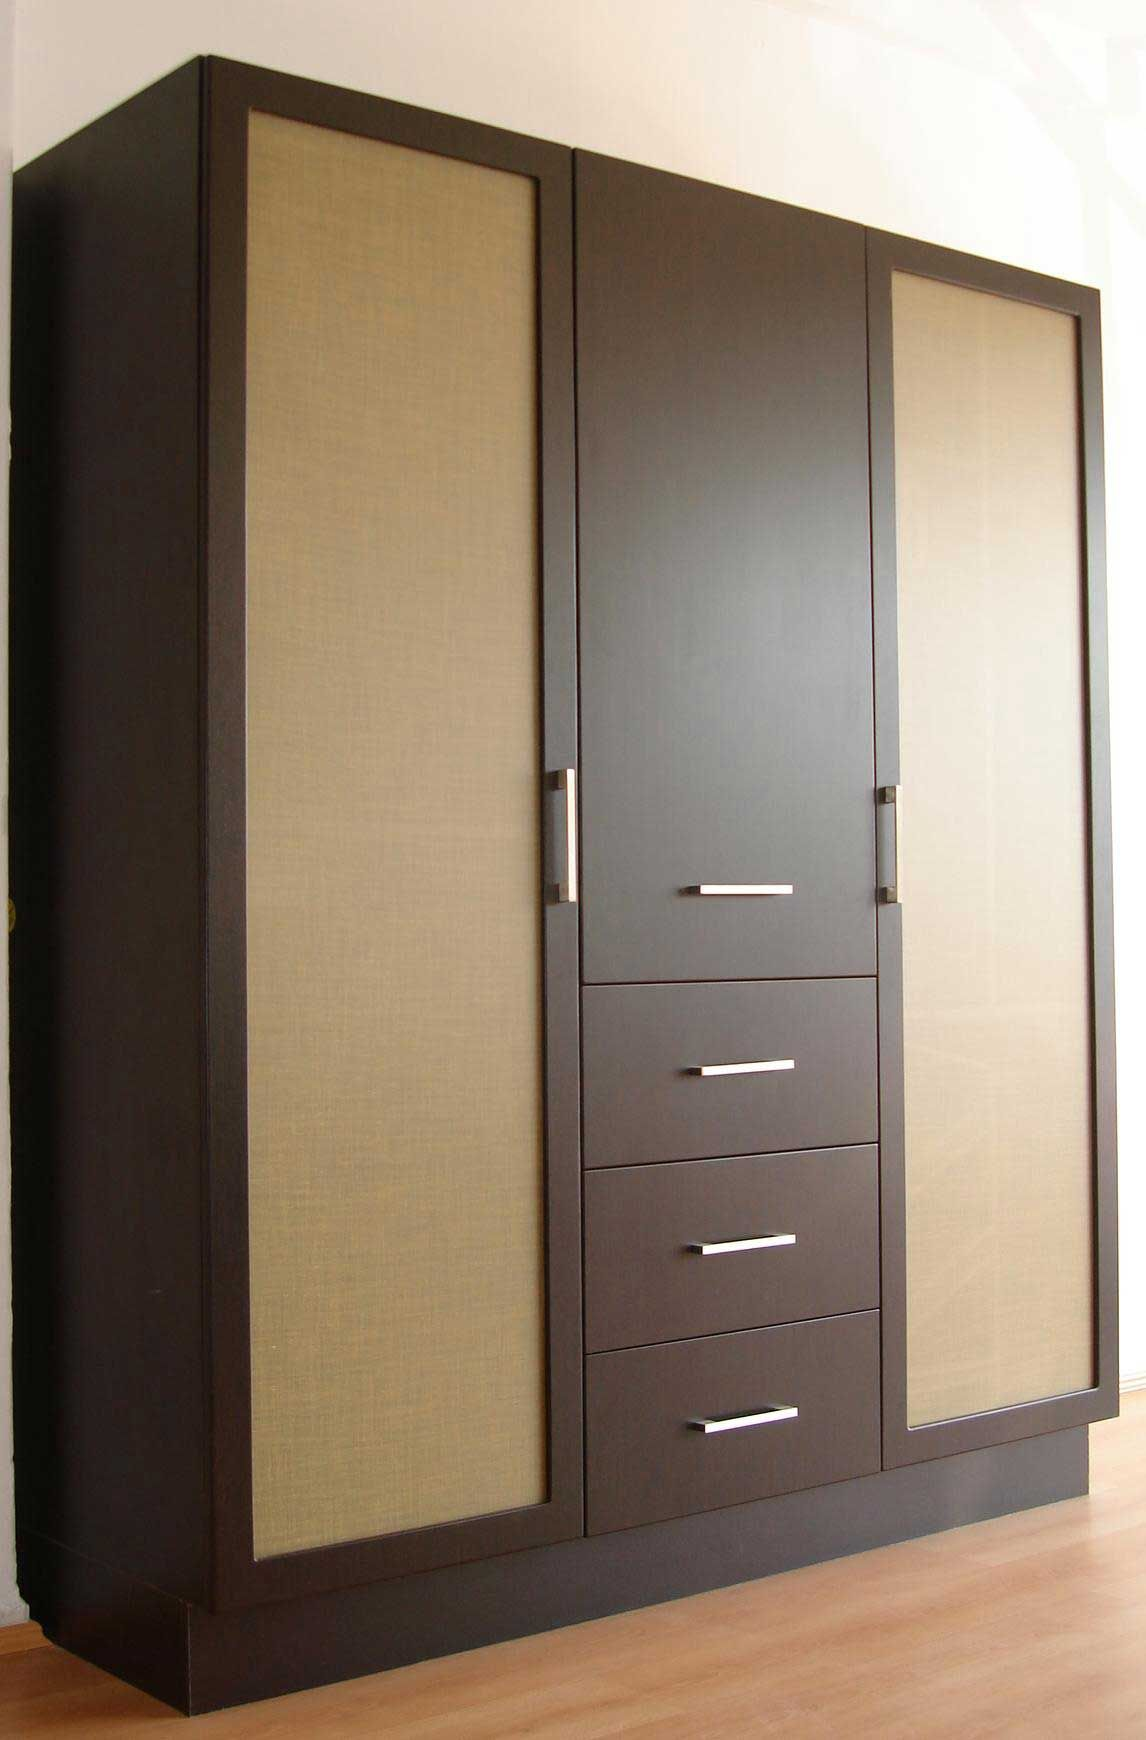 Wardrobe Storage Cabinet Wardrobe Designs Google Search Wardrobes Cabinets